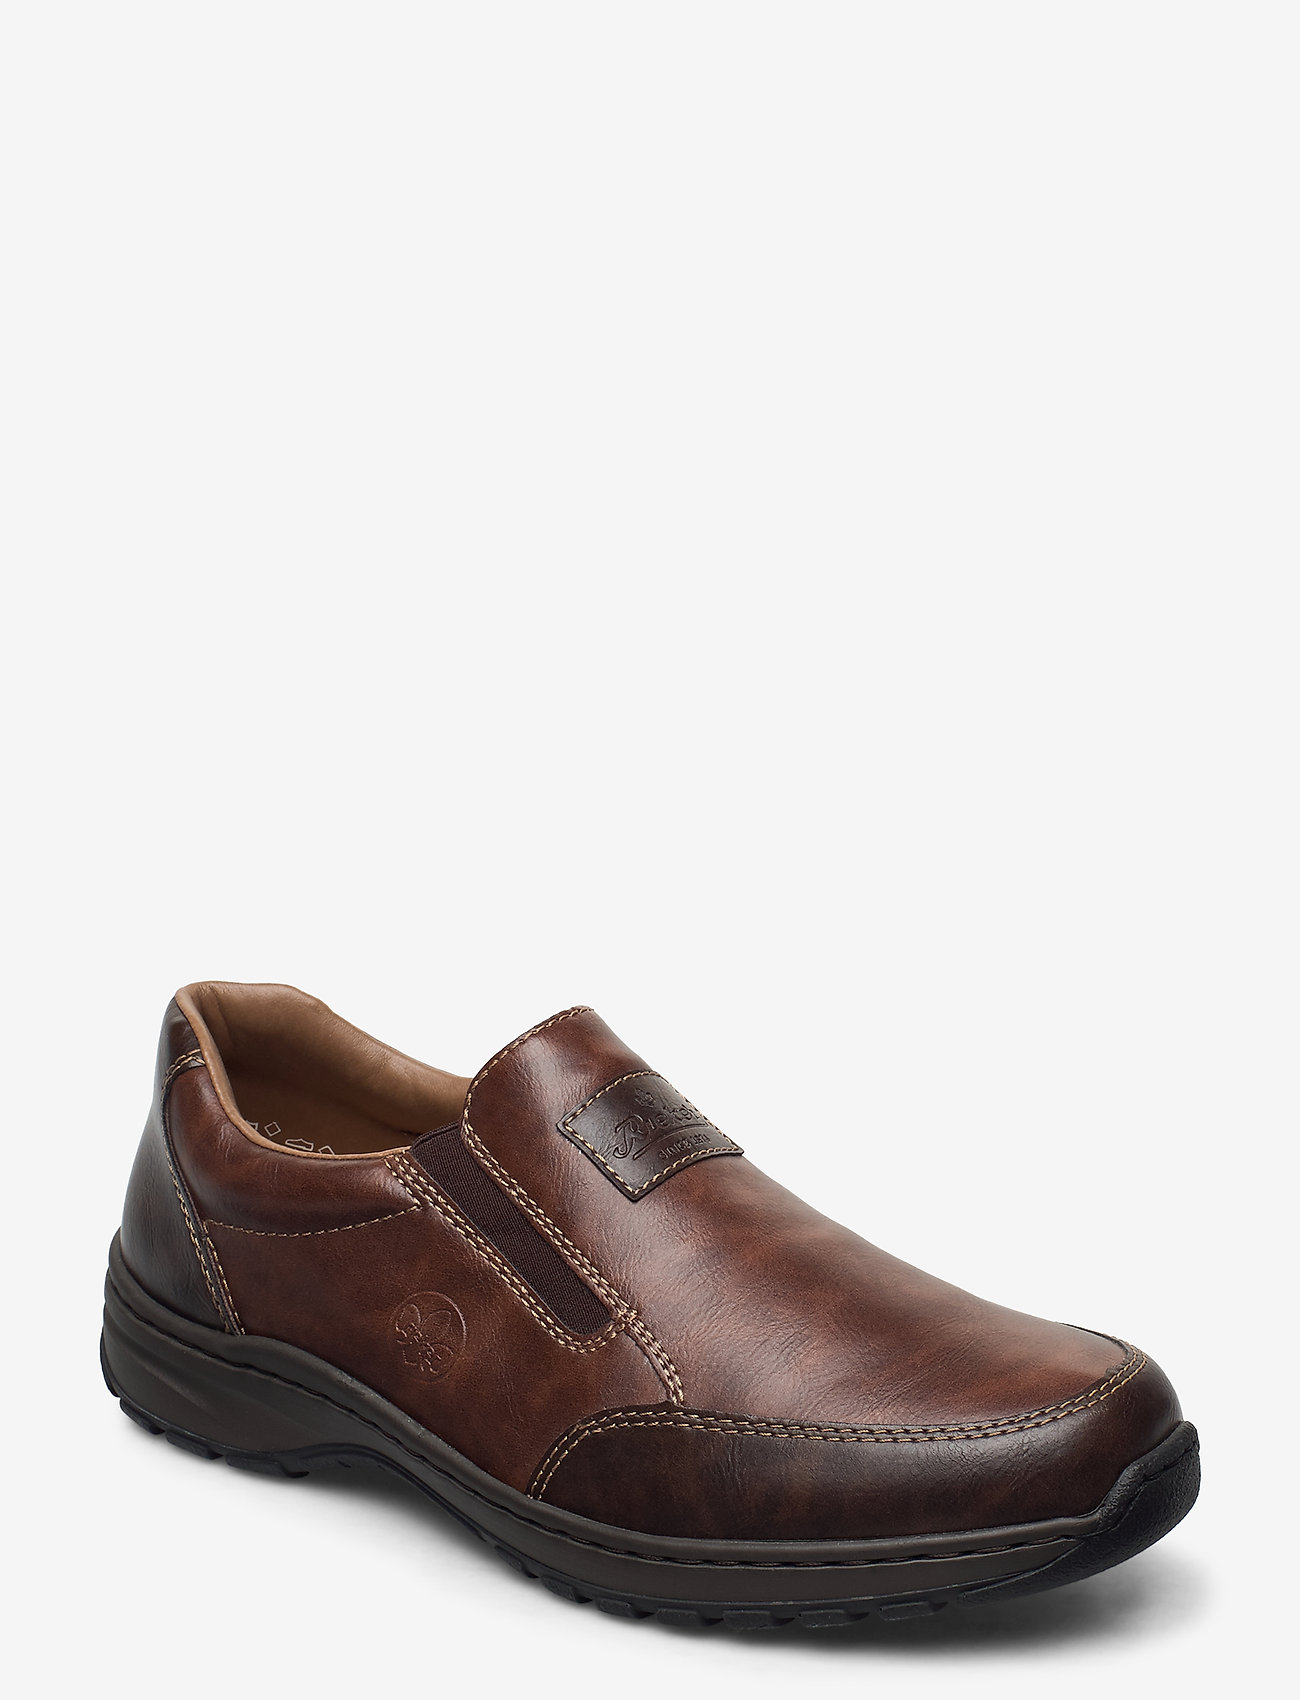 Rieker - 03354-26 - loafers - brown - 0